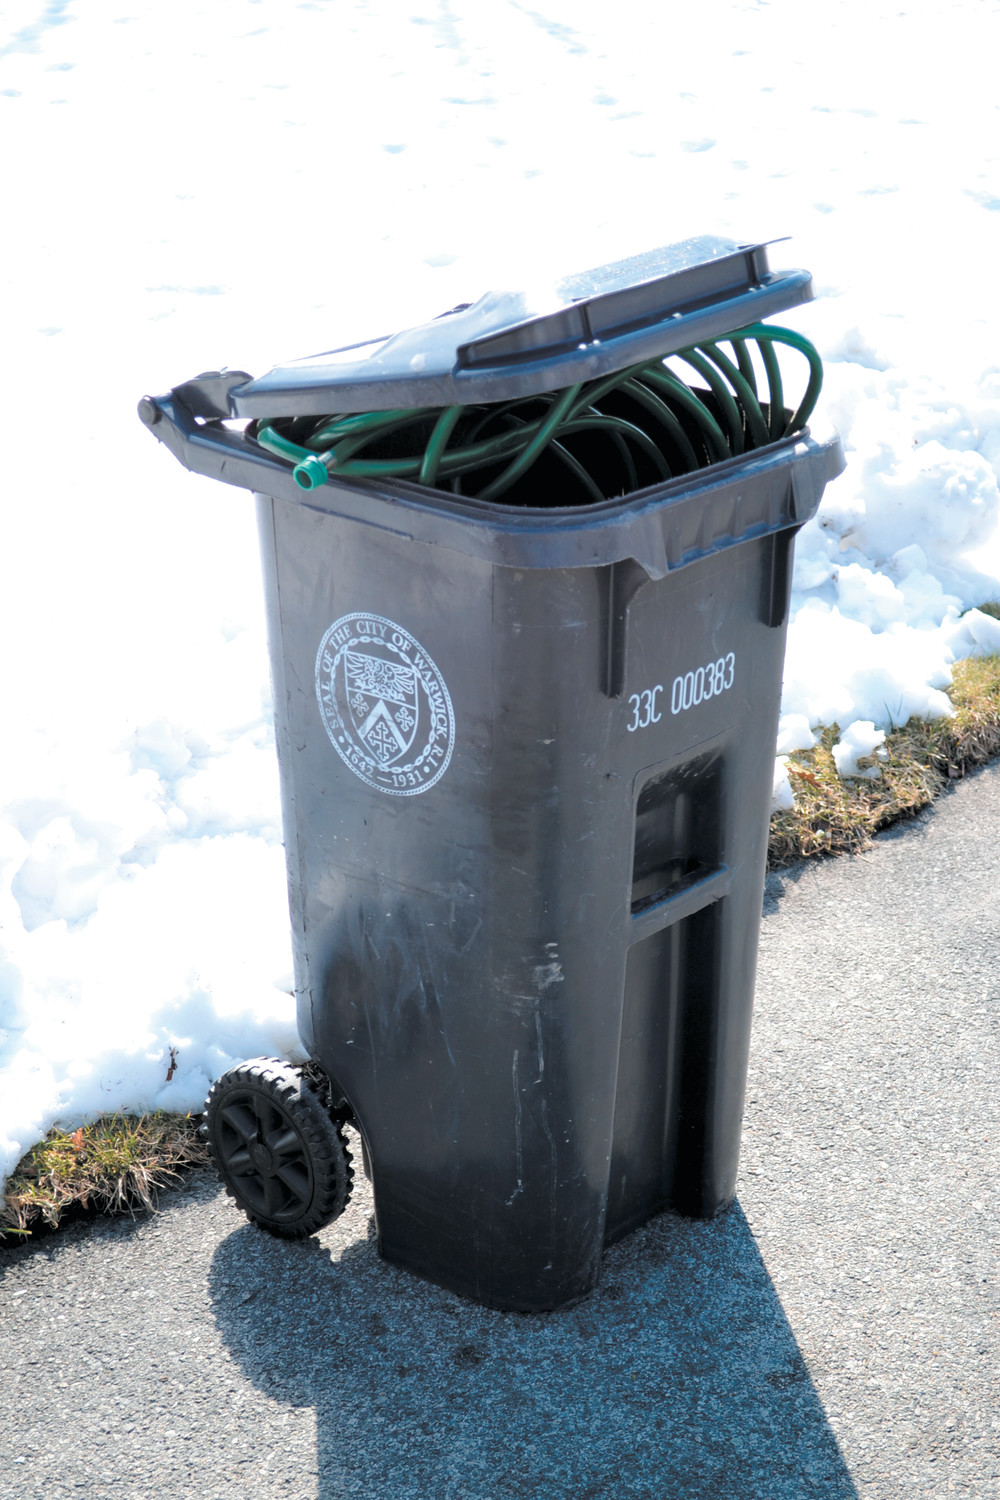 SOME ROUTES HOSED? A waste bin prior to being      emptied on Monday. The city warned last week some routes may not get picked up during their regularly scheduled times due to a limited number of functional vehicles.